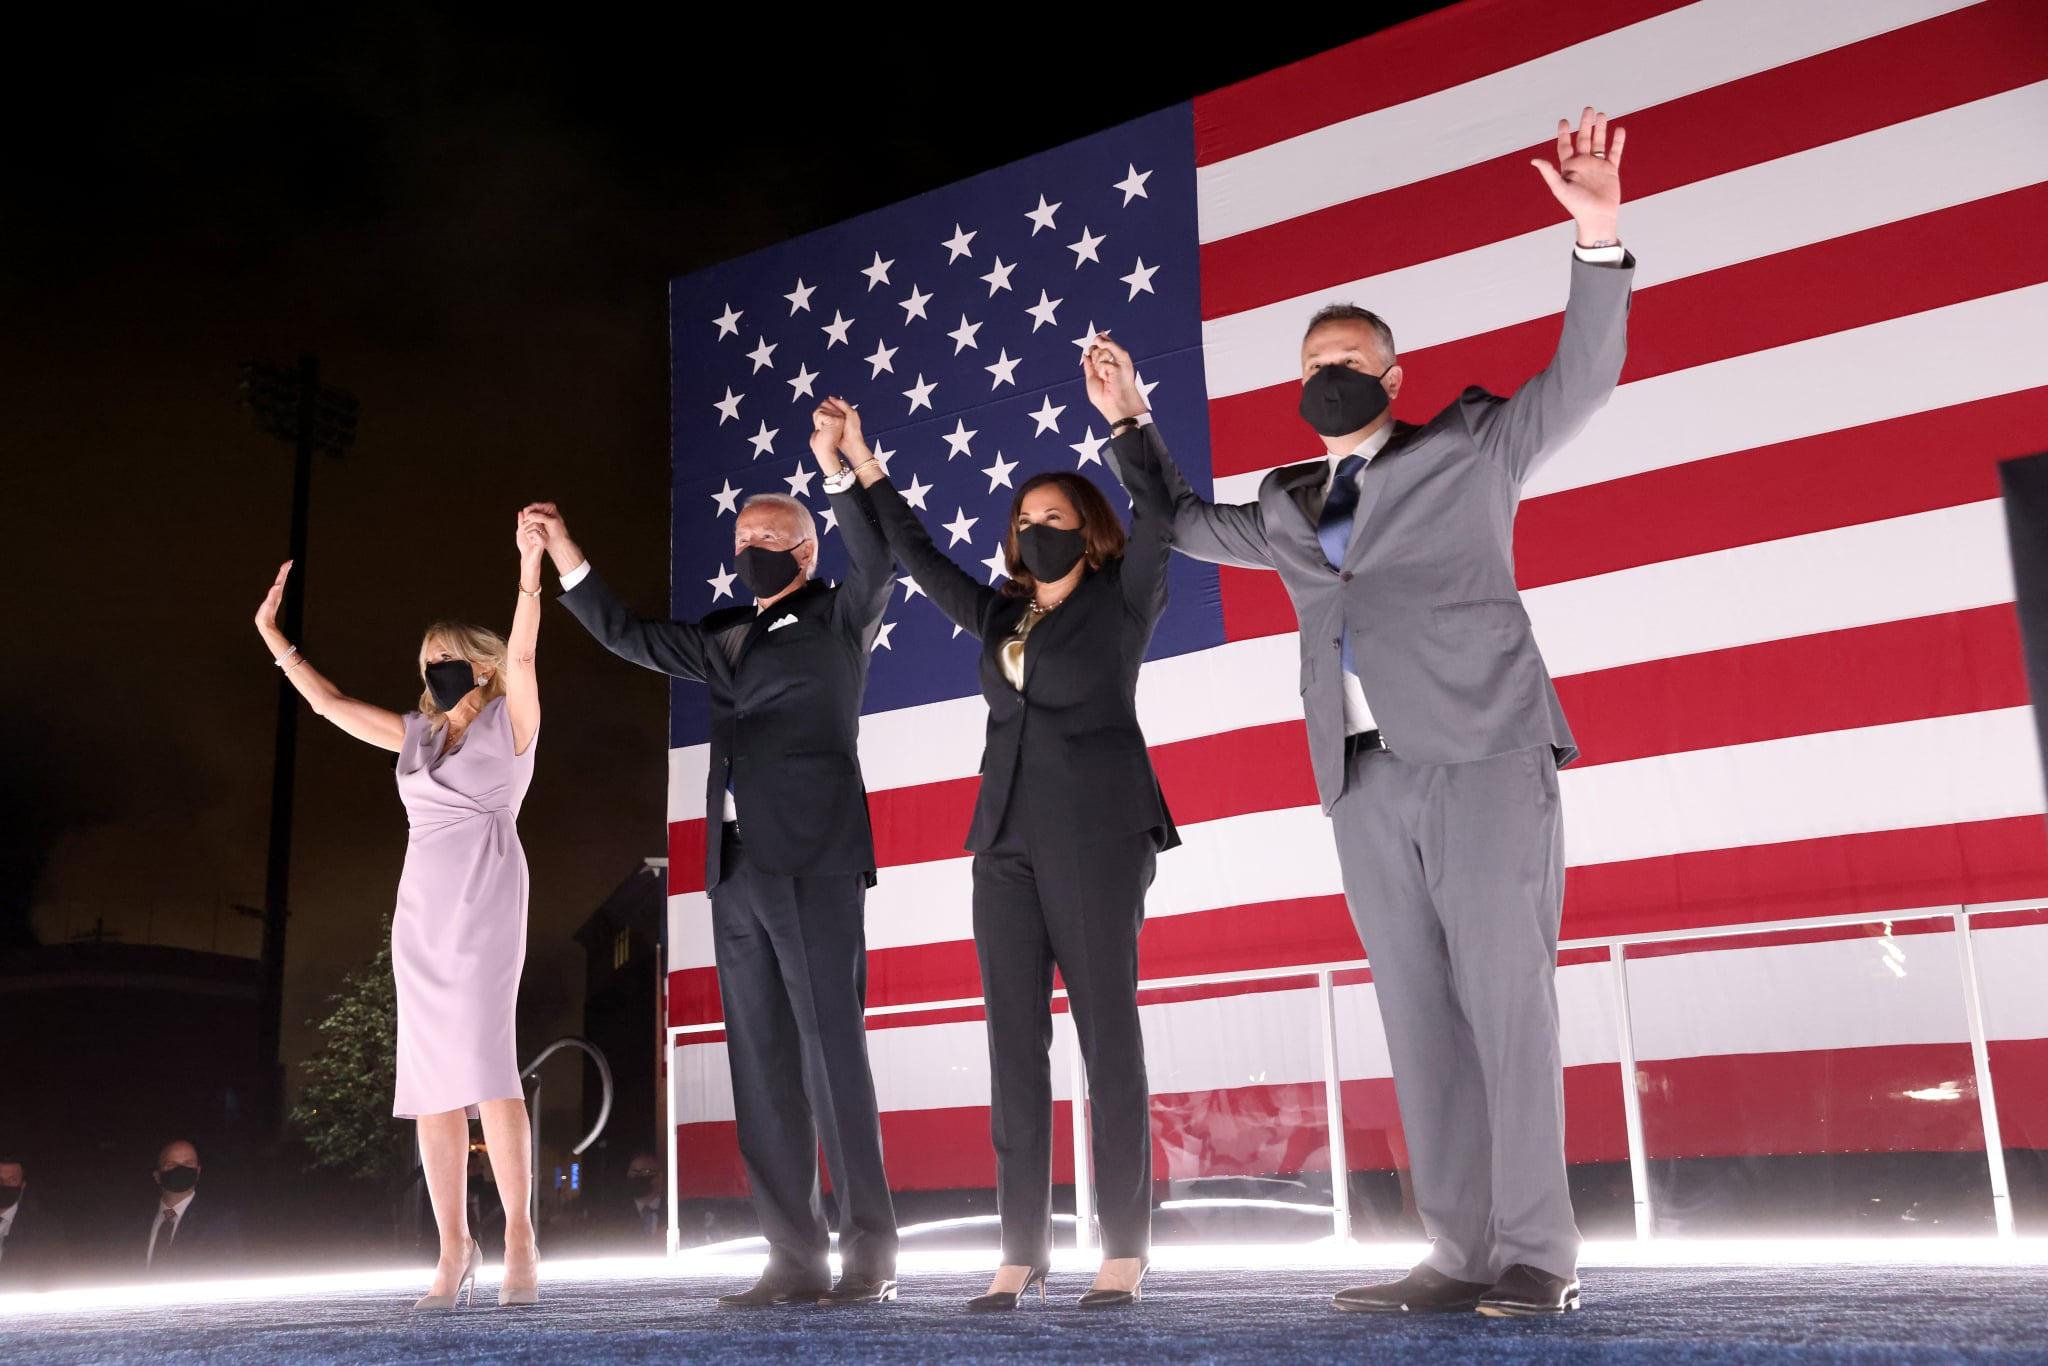 WILMINGTON, DELAWARE - AUGUST 20: Democratic presidential nominee Joe Biden, his wife Dr. Jill Biden, Democratic Vice Presidential nominee Kamala Harris and her husband Douglas Emhoff raise their arms on stage outside the Chase Center after Biden delivered his acceptance speech on the fourth night of the Democratic National Convention from the Chase Center on August 20, 2020 in Wilmington, Delaware. The convention, which was once expected to draw 50,000 people to Milwaukee, Wisconsin, is now taking place virtually due to the coronavirus pandemic. (Photo by Win McNamee/Getty Images)